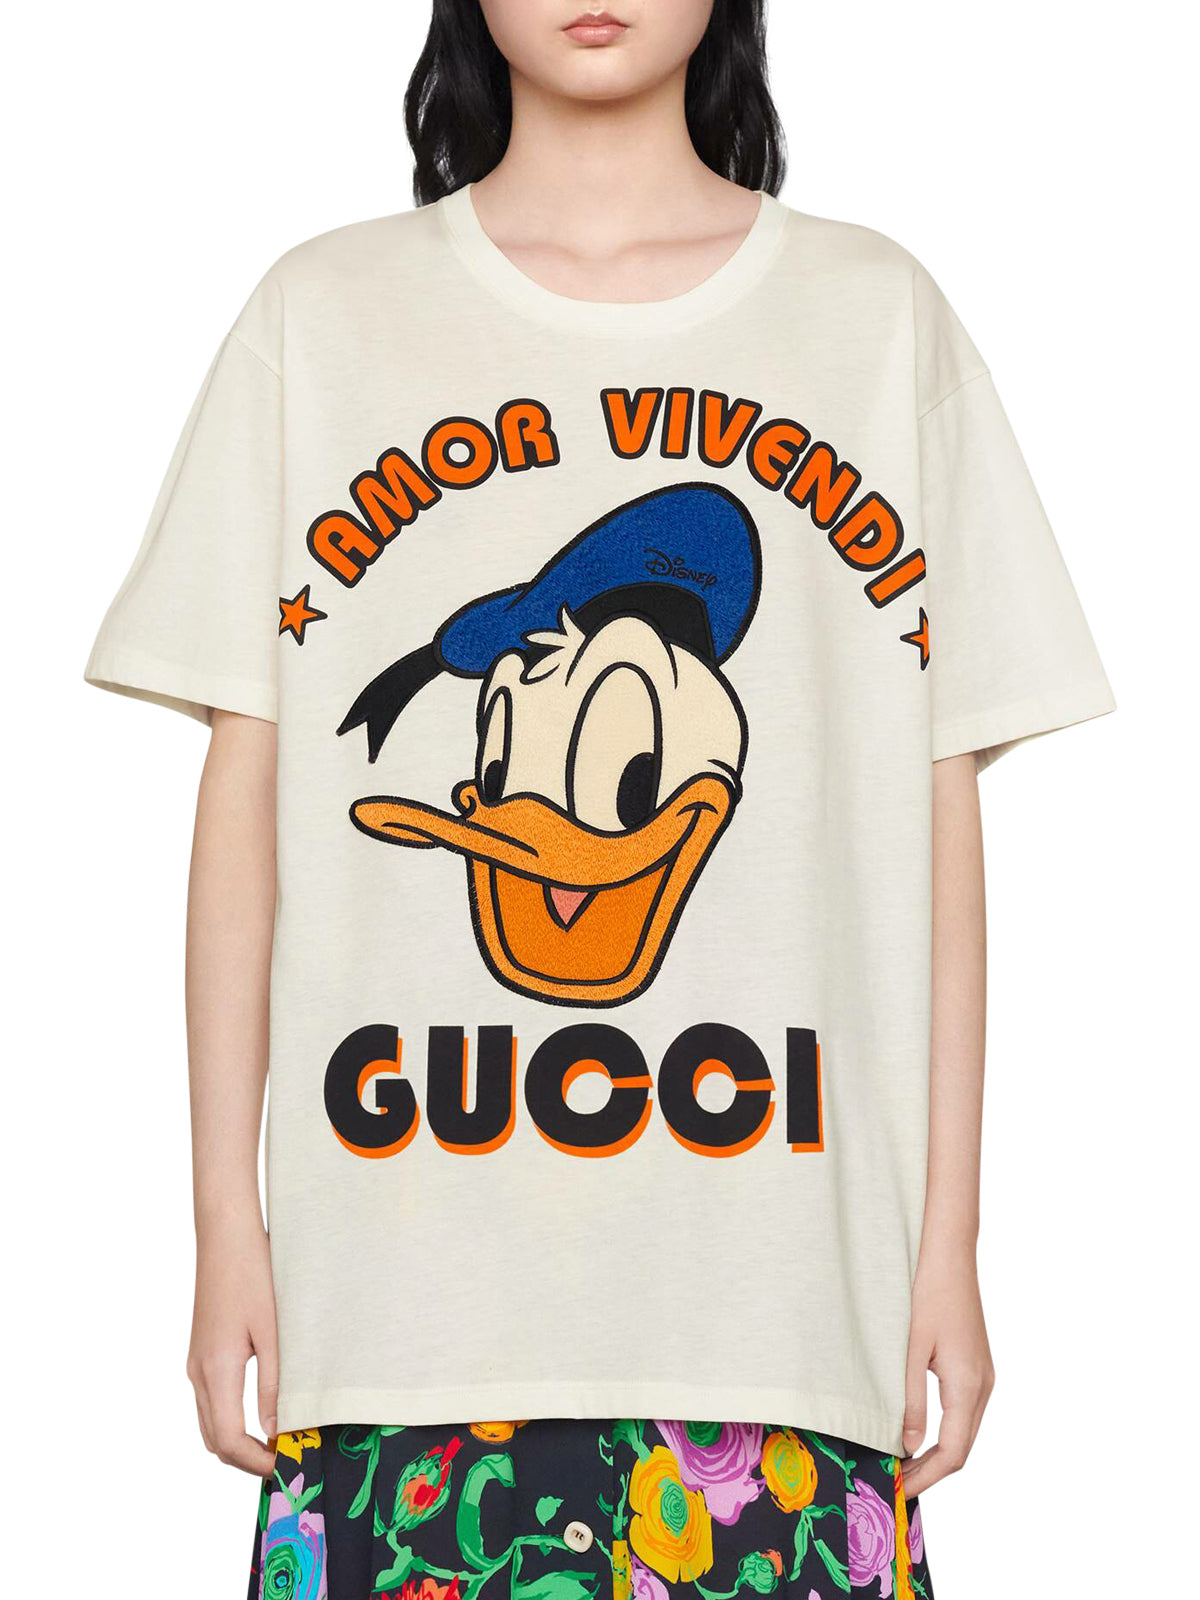 Disney x Gucci Donald Duck T-shirt